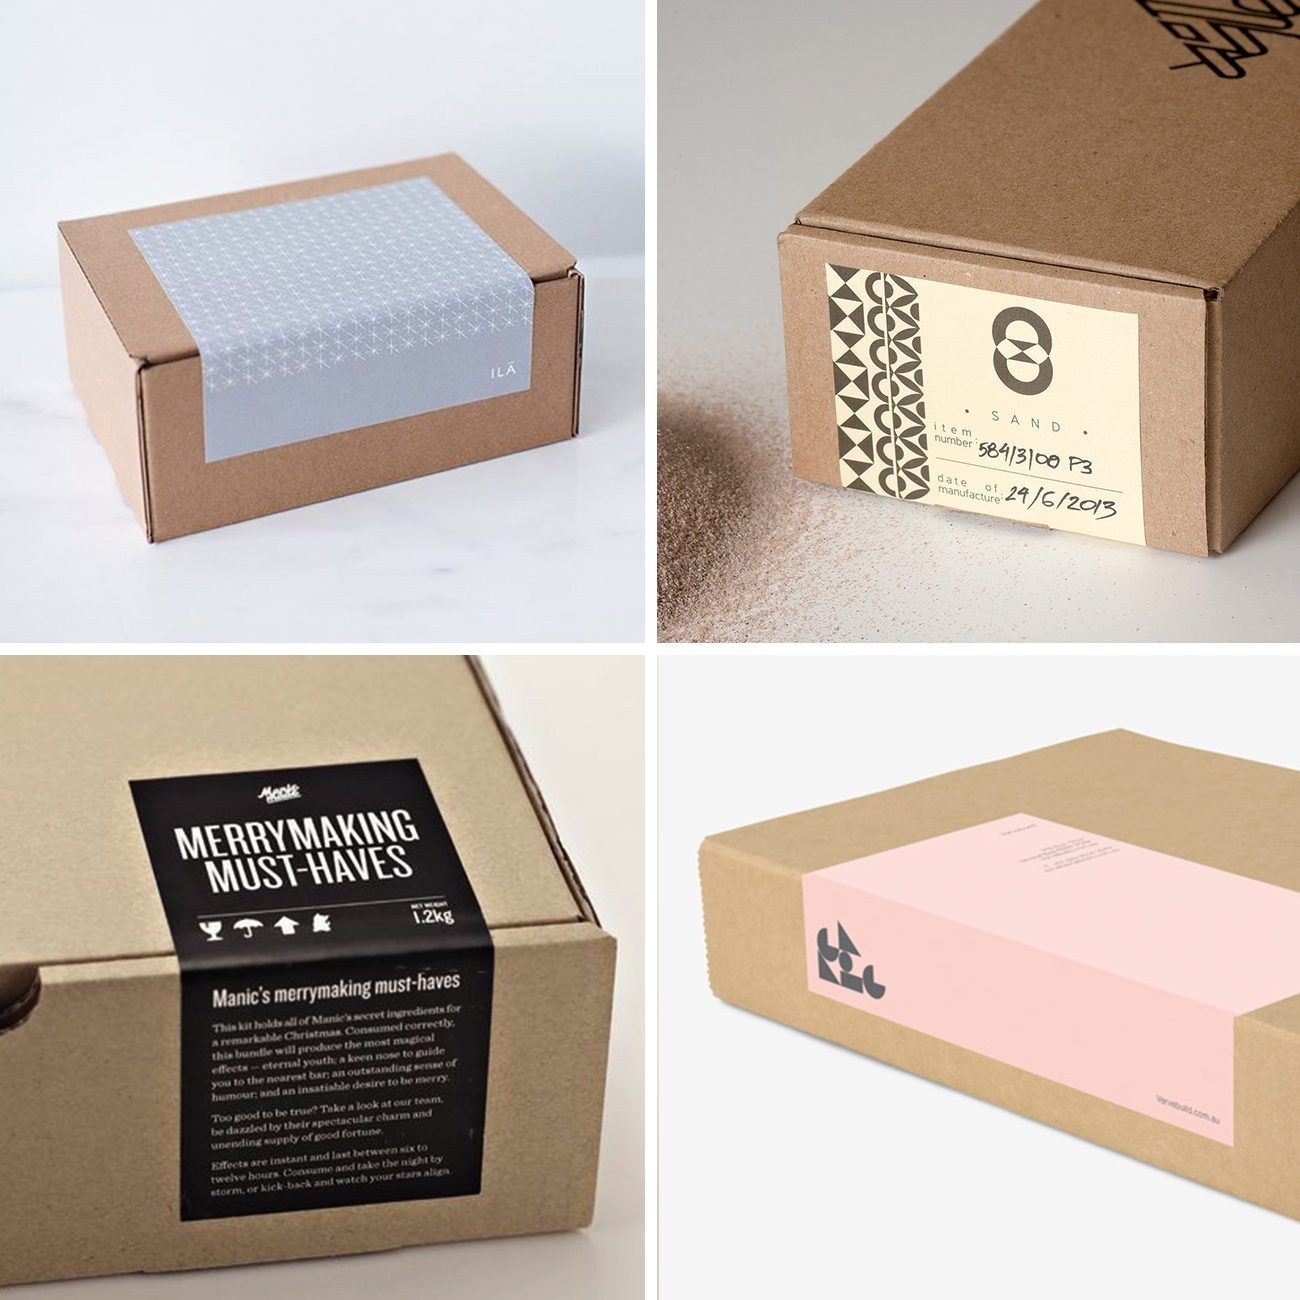 Photos via: Anagrama; Ila; Marios Georntamilis, Nikos Athanasopoulos, and Konstantina Gorgogianni, —, — 90 Ideas to Spruce Up Your Holiday Packaging Design